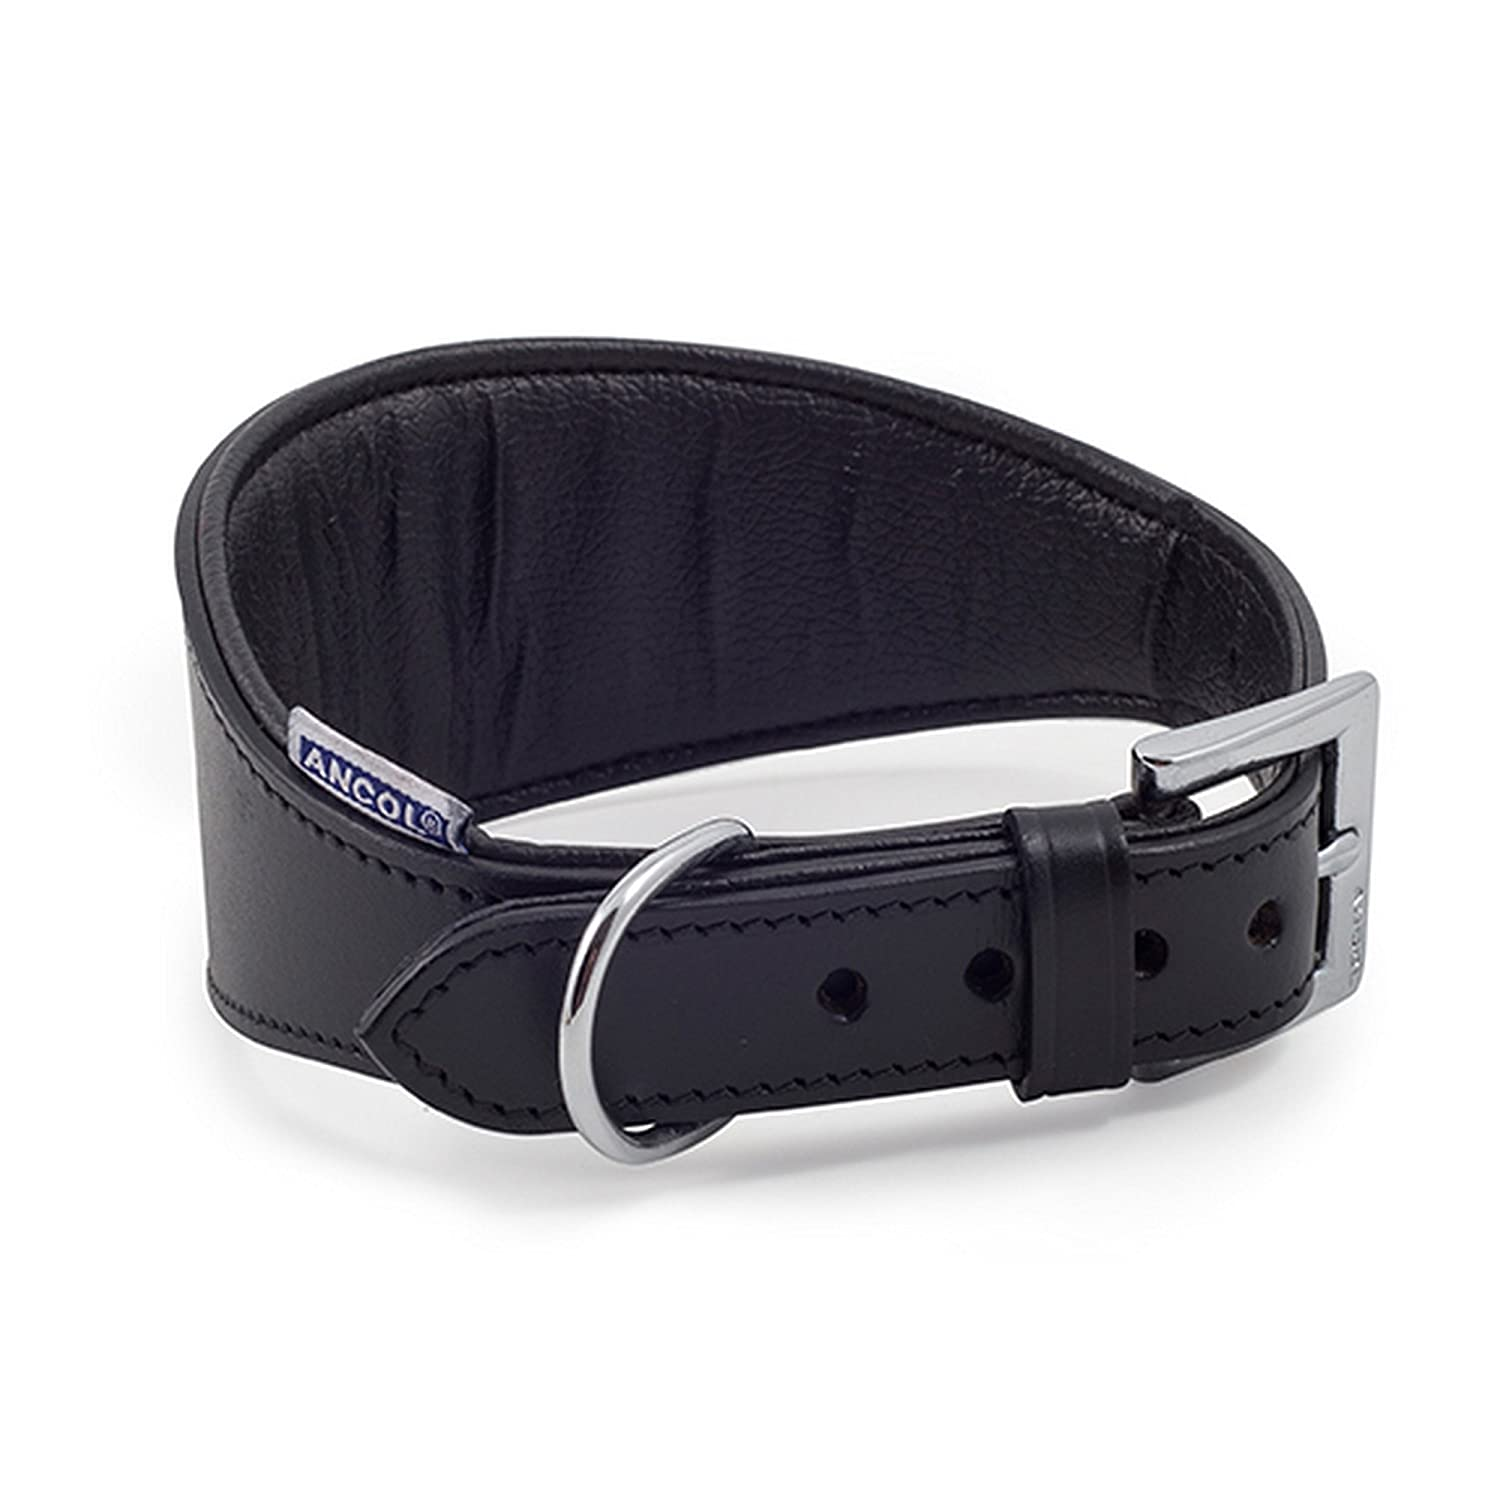 Black 13.7-18.8in (Size 4-5) Black 13.7-18.8in (Size 4-5) Ancol Pet Products Heritage Buckle Fasten Padded Greyhound Collar (13.7-18.8in (Size 4-5)) (Black)